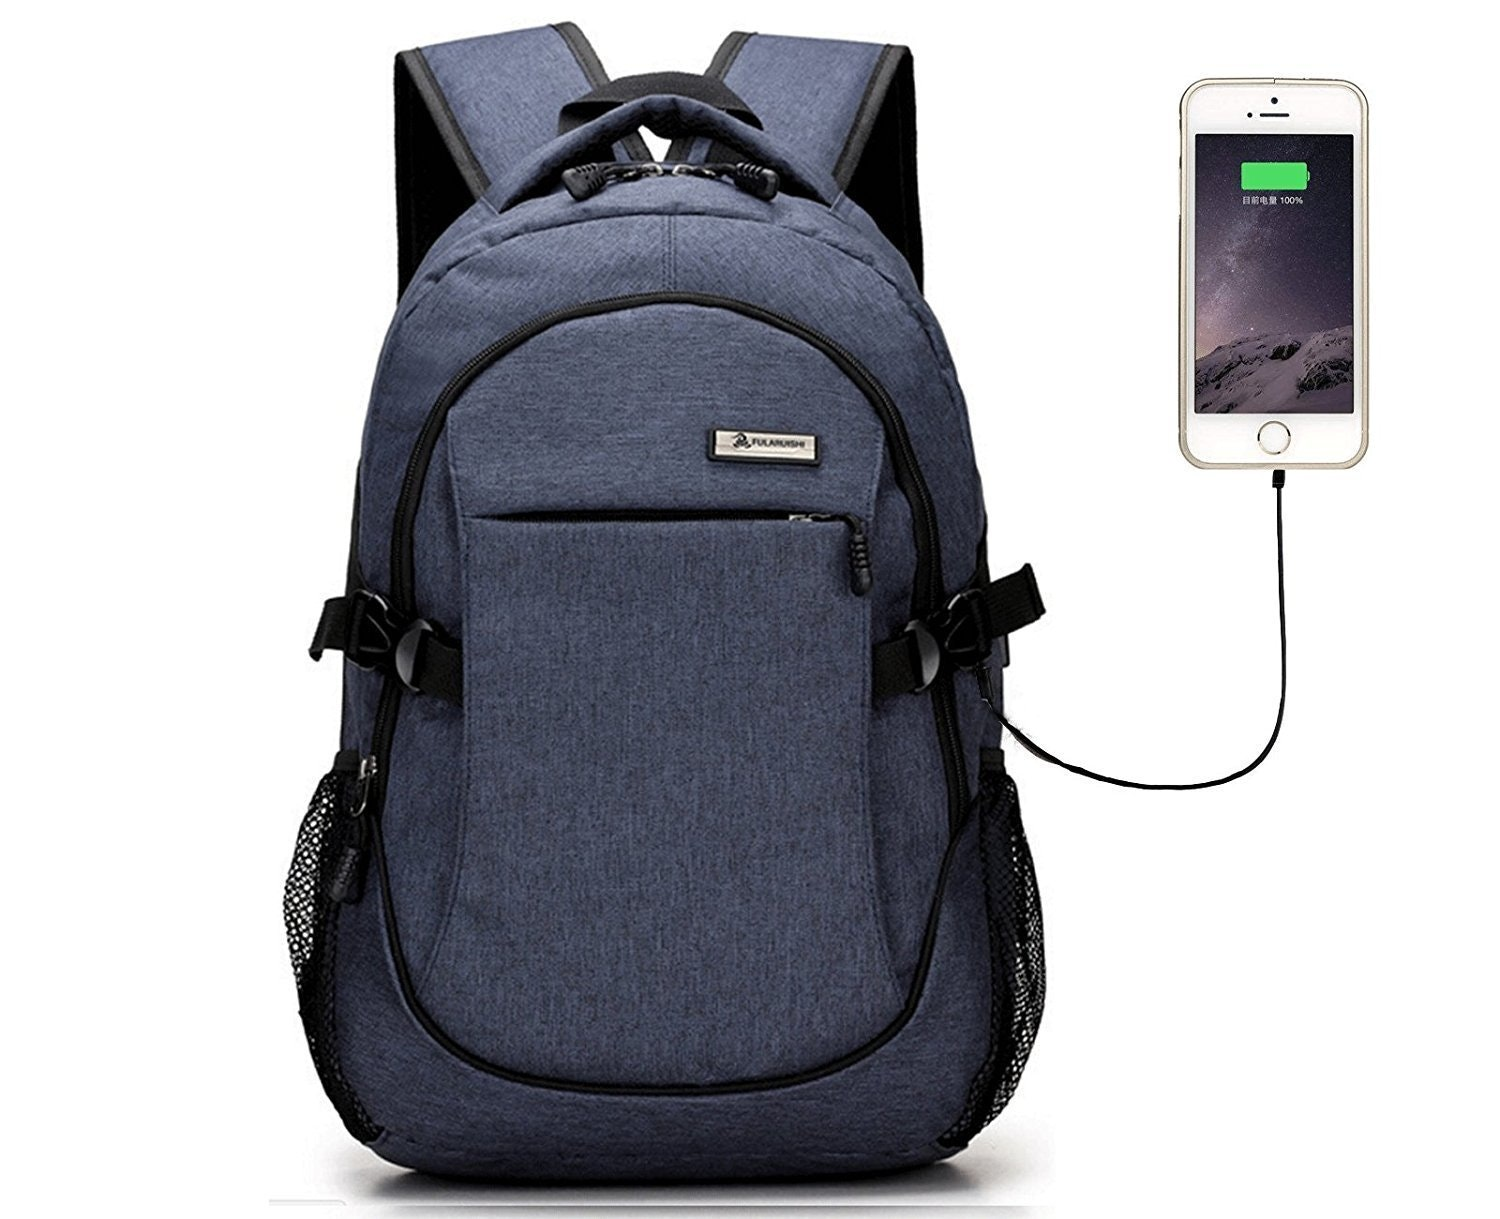 12 Smart Backpacks for Adults That Want to Carry Their Tech, Look